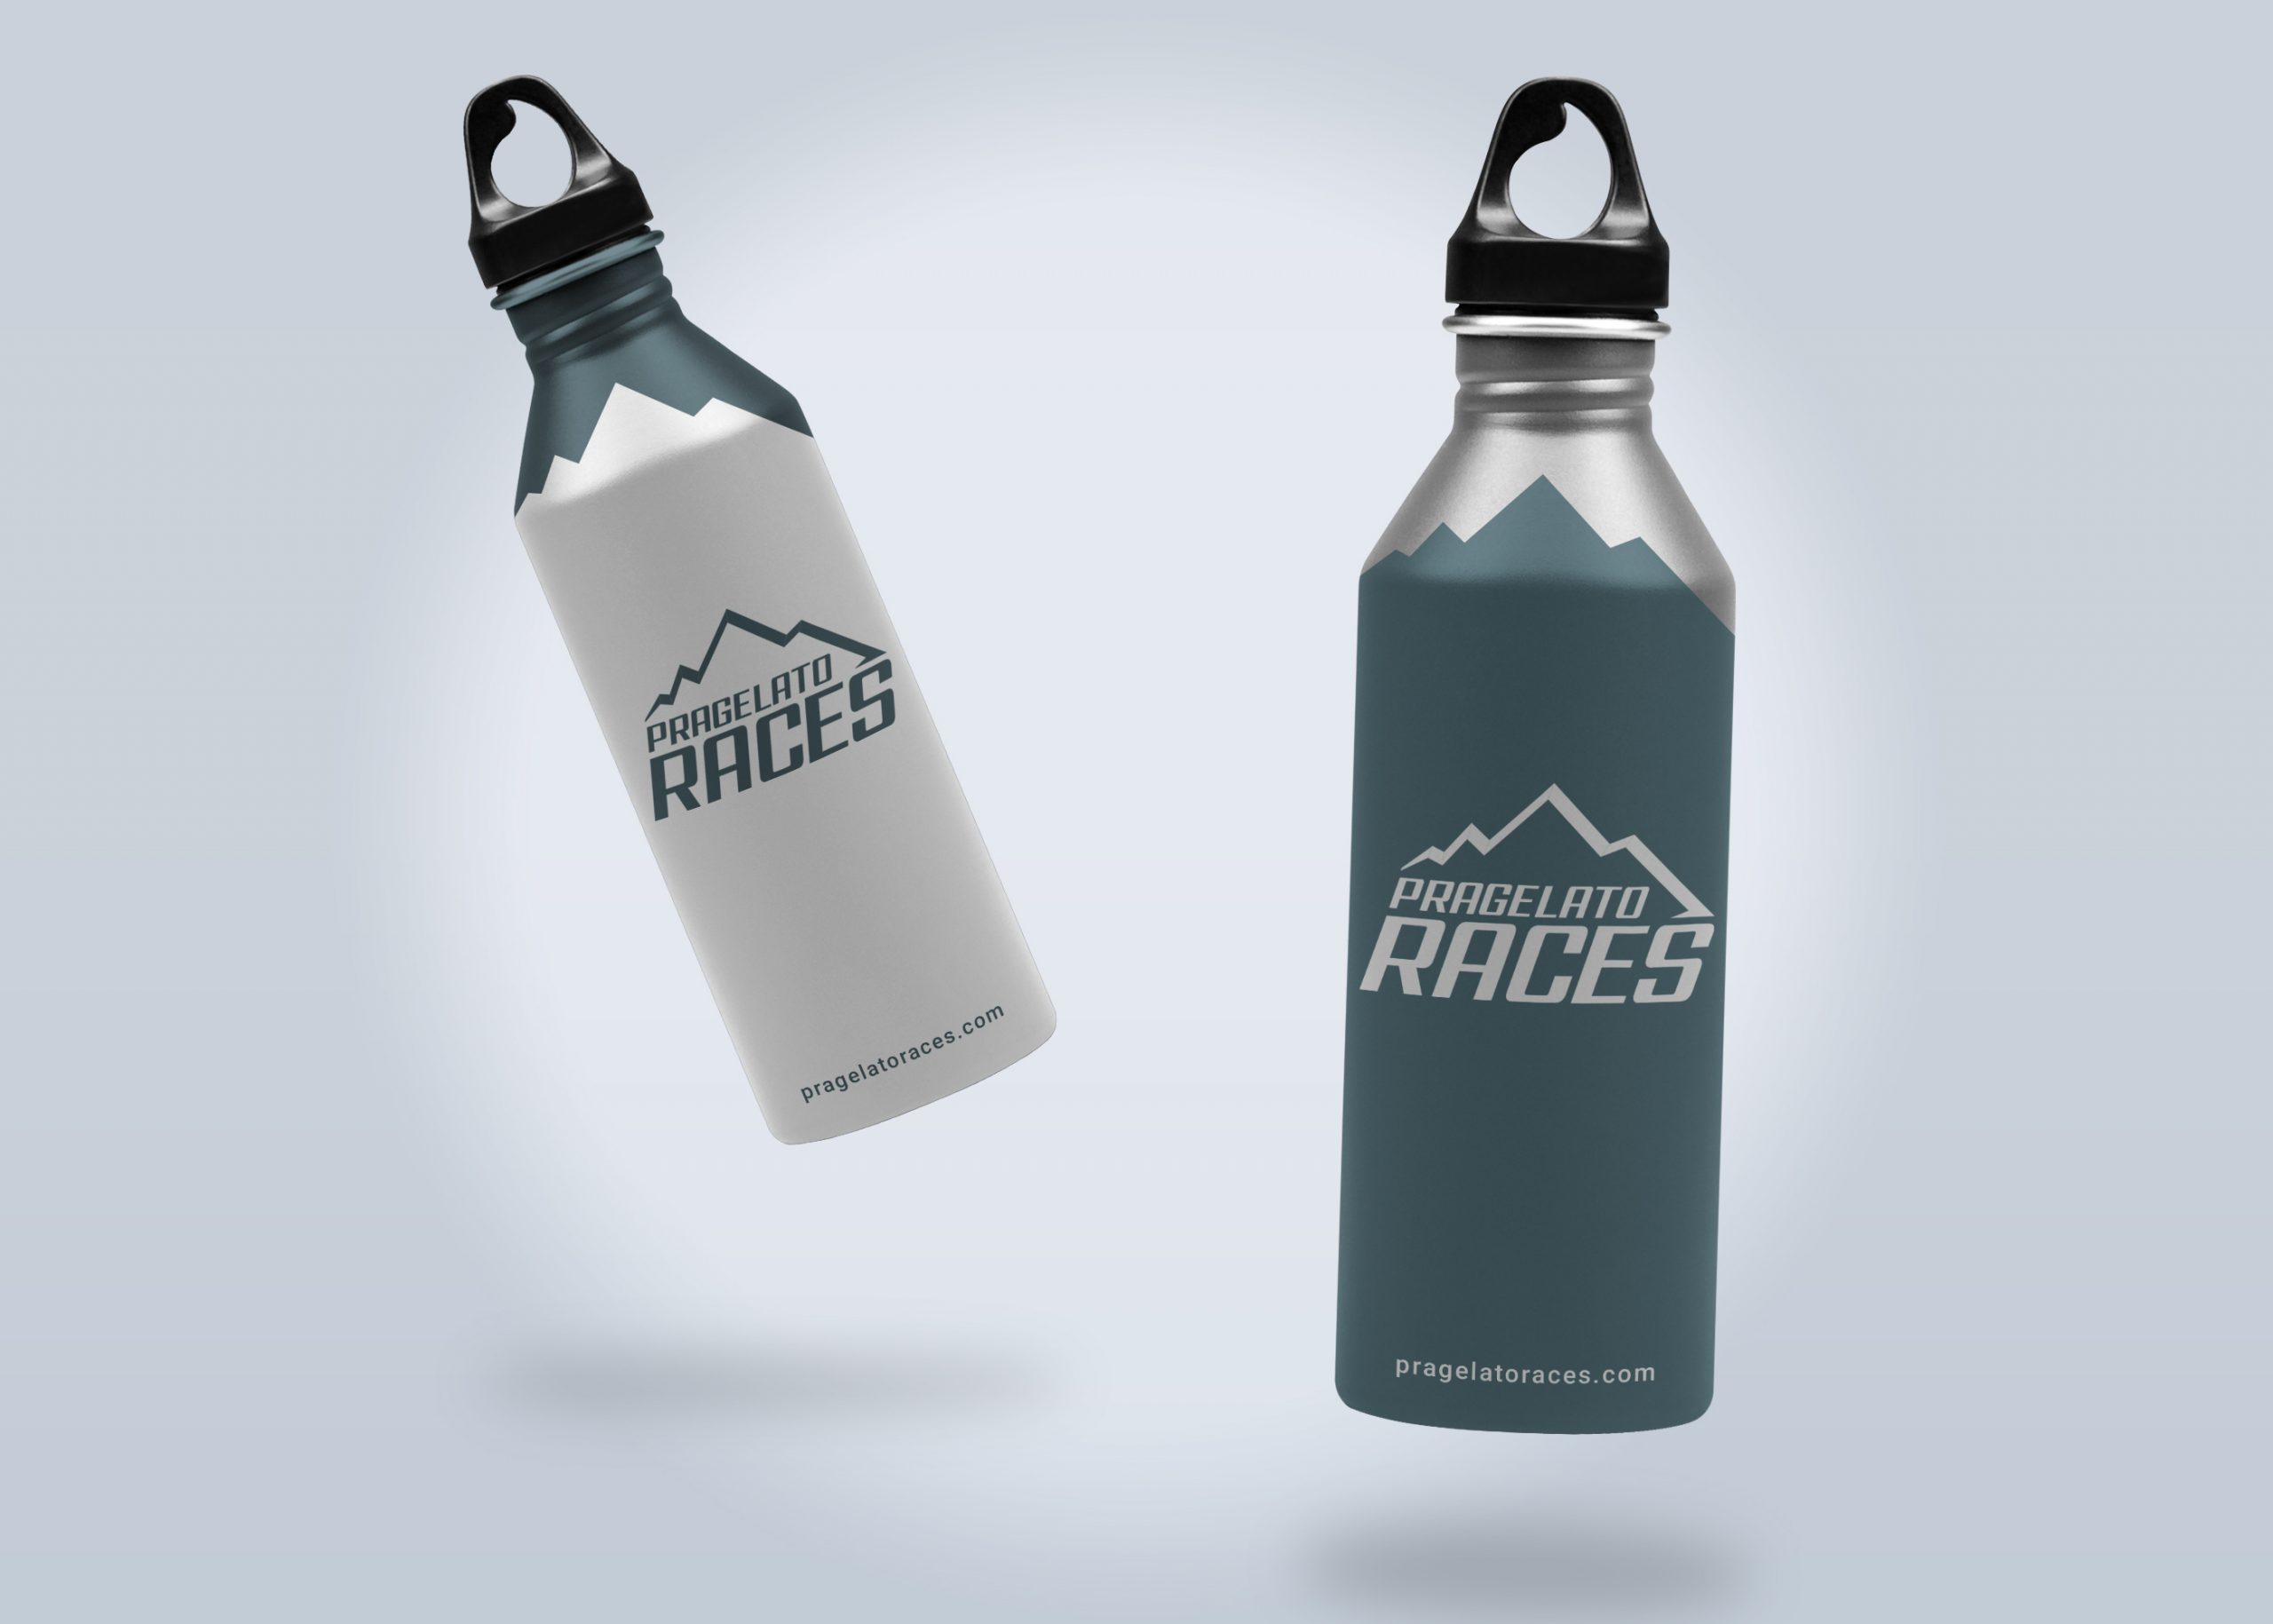 Pragelato Races Bottles